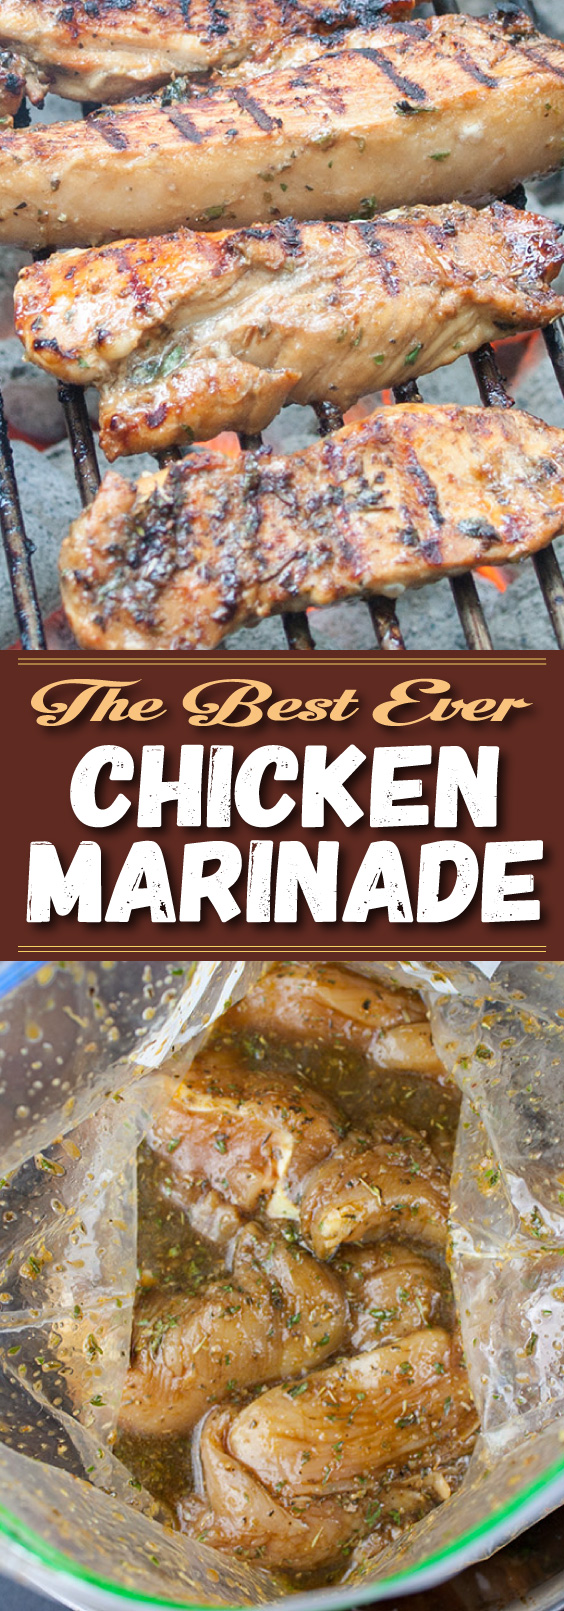 Best Ever Grilled Chicken Marinade - This marinade imparts the ultimate flavor experience and produces a juicy tender piece of grilled chicken. Be sure to add this to your 4th of July menu. #grilling #bbq #4thofJuly #chicken #marinade